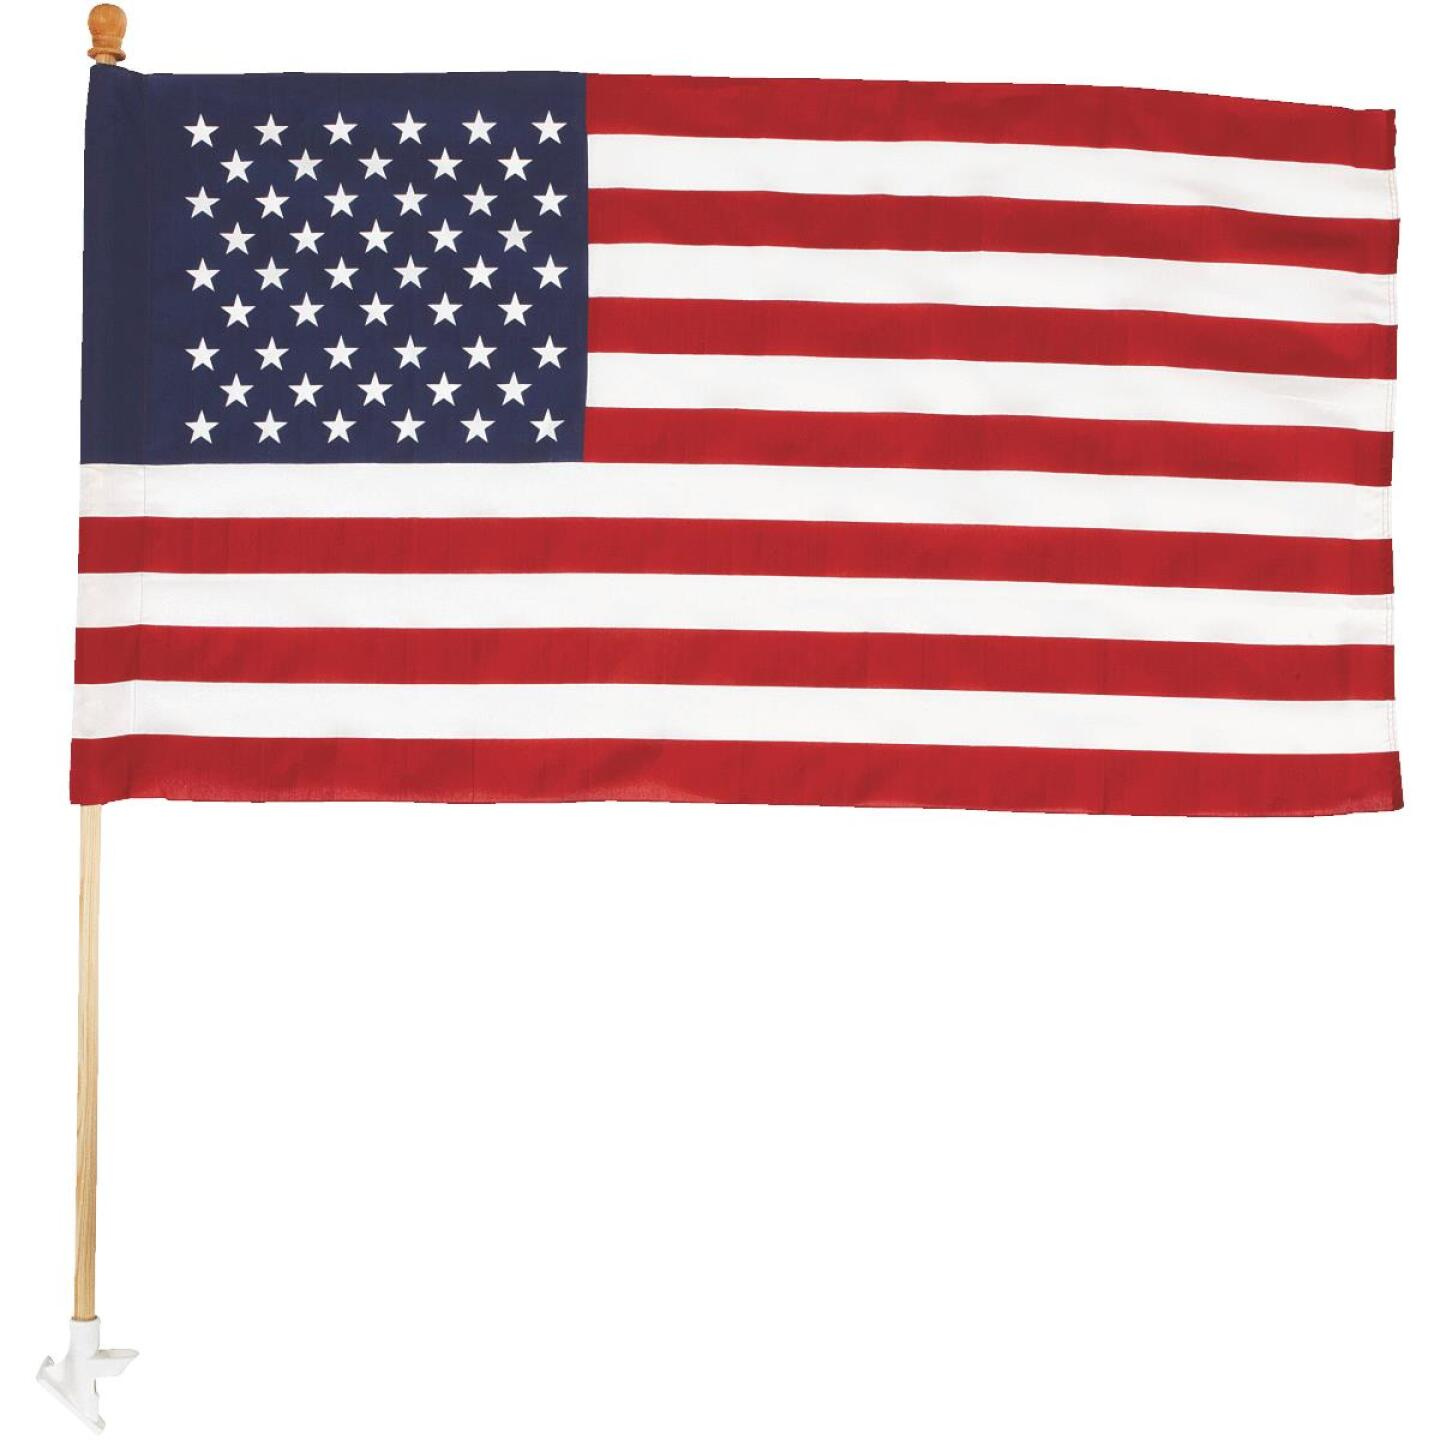 Valley Forge 2.5 Ft. x 4 Ft. Polycotton American Flag & 5 Ft. Pole Kit Image 2